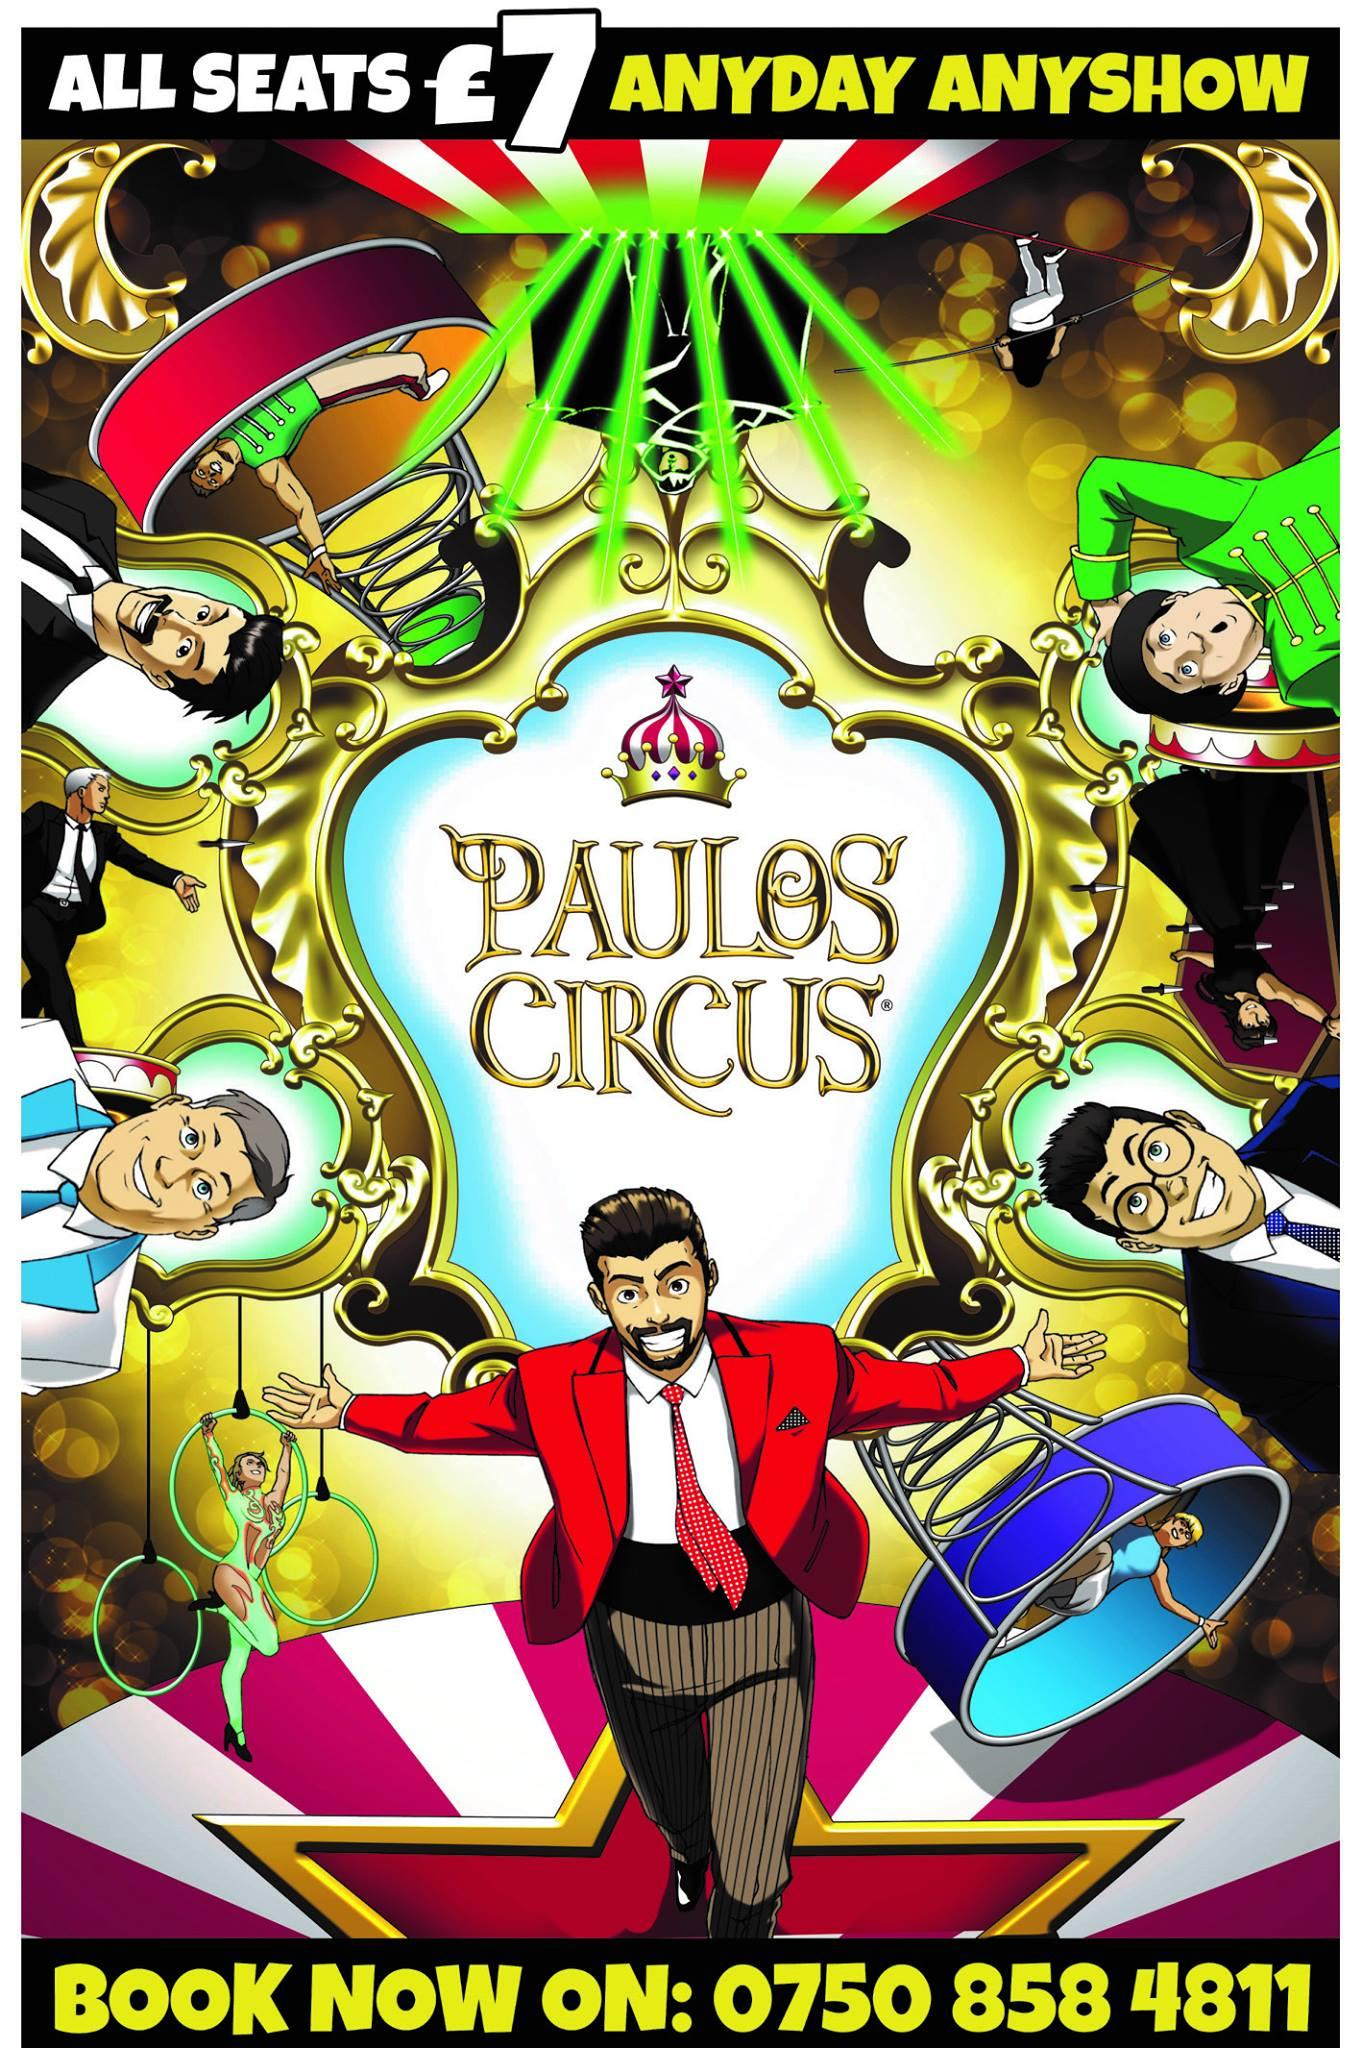 The Paulos Circus Flyer